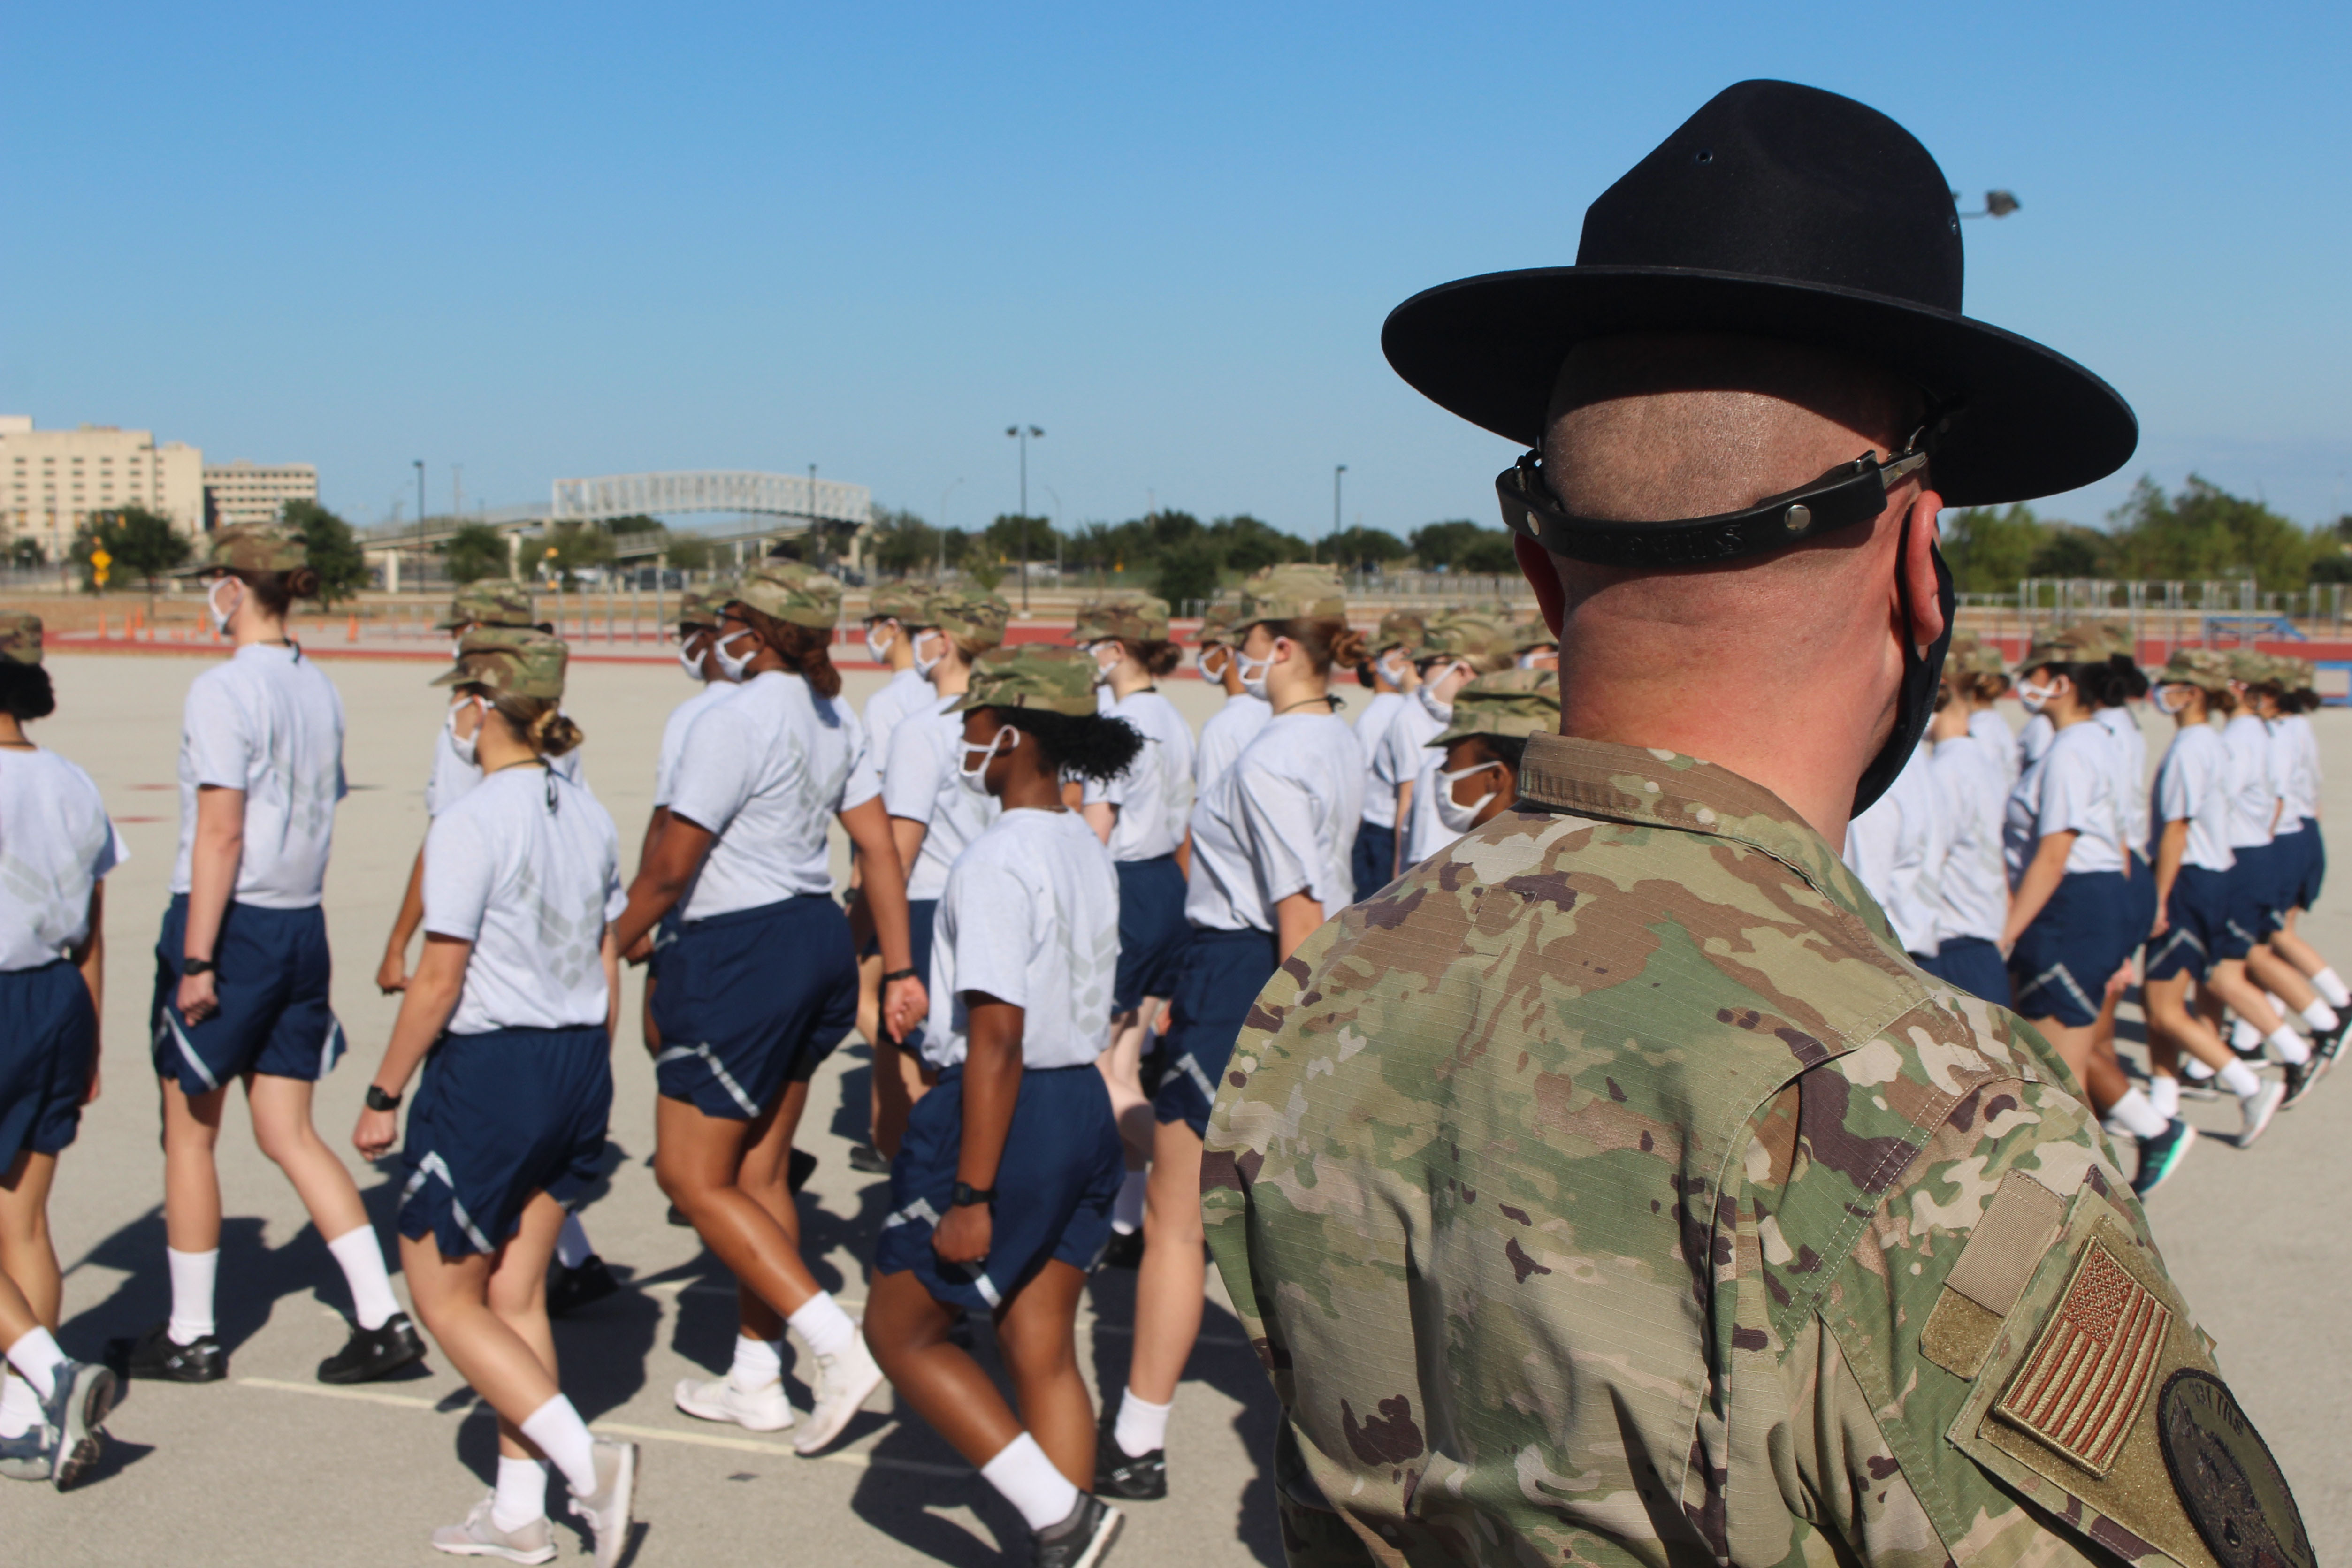 Caption: Trainees march in formation at Joint Base San Antonio-Lackland. The Air Force has restructured basic military training so that there is less travel time and fewer opportunities to practice drill., Credit: Carson Frame / American Homefront